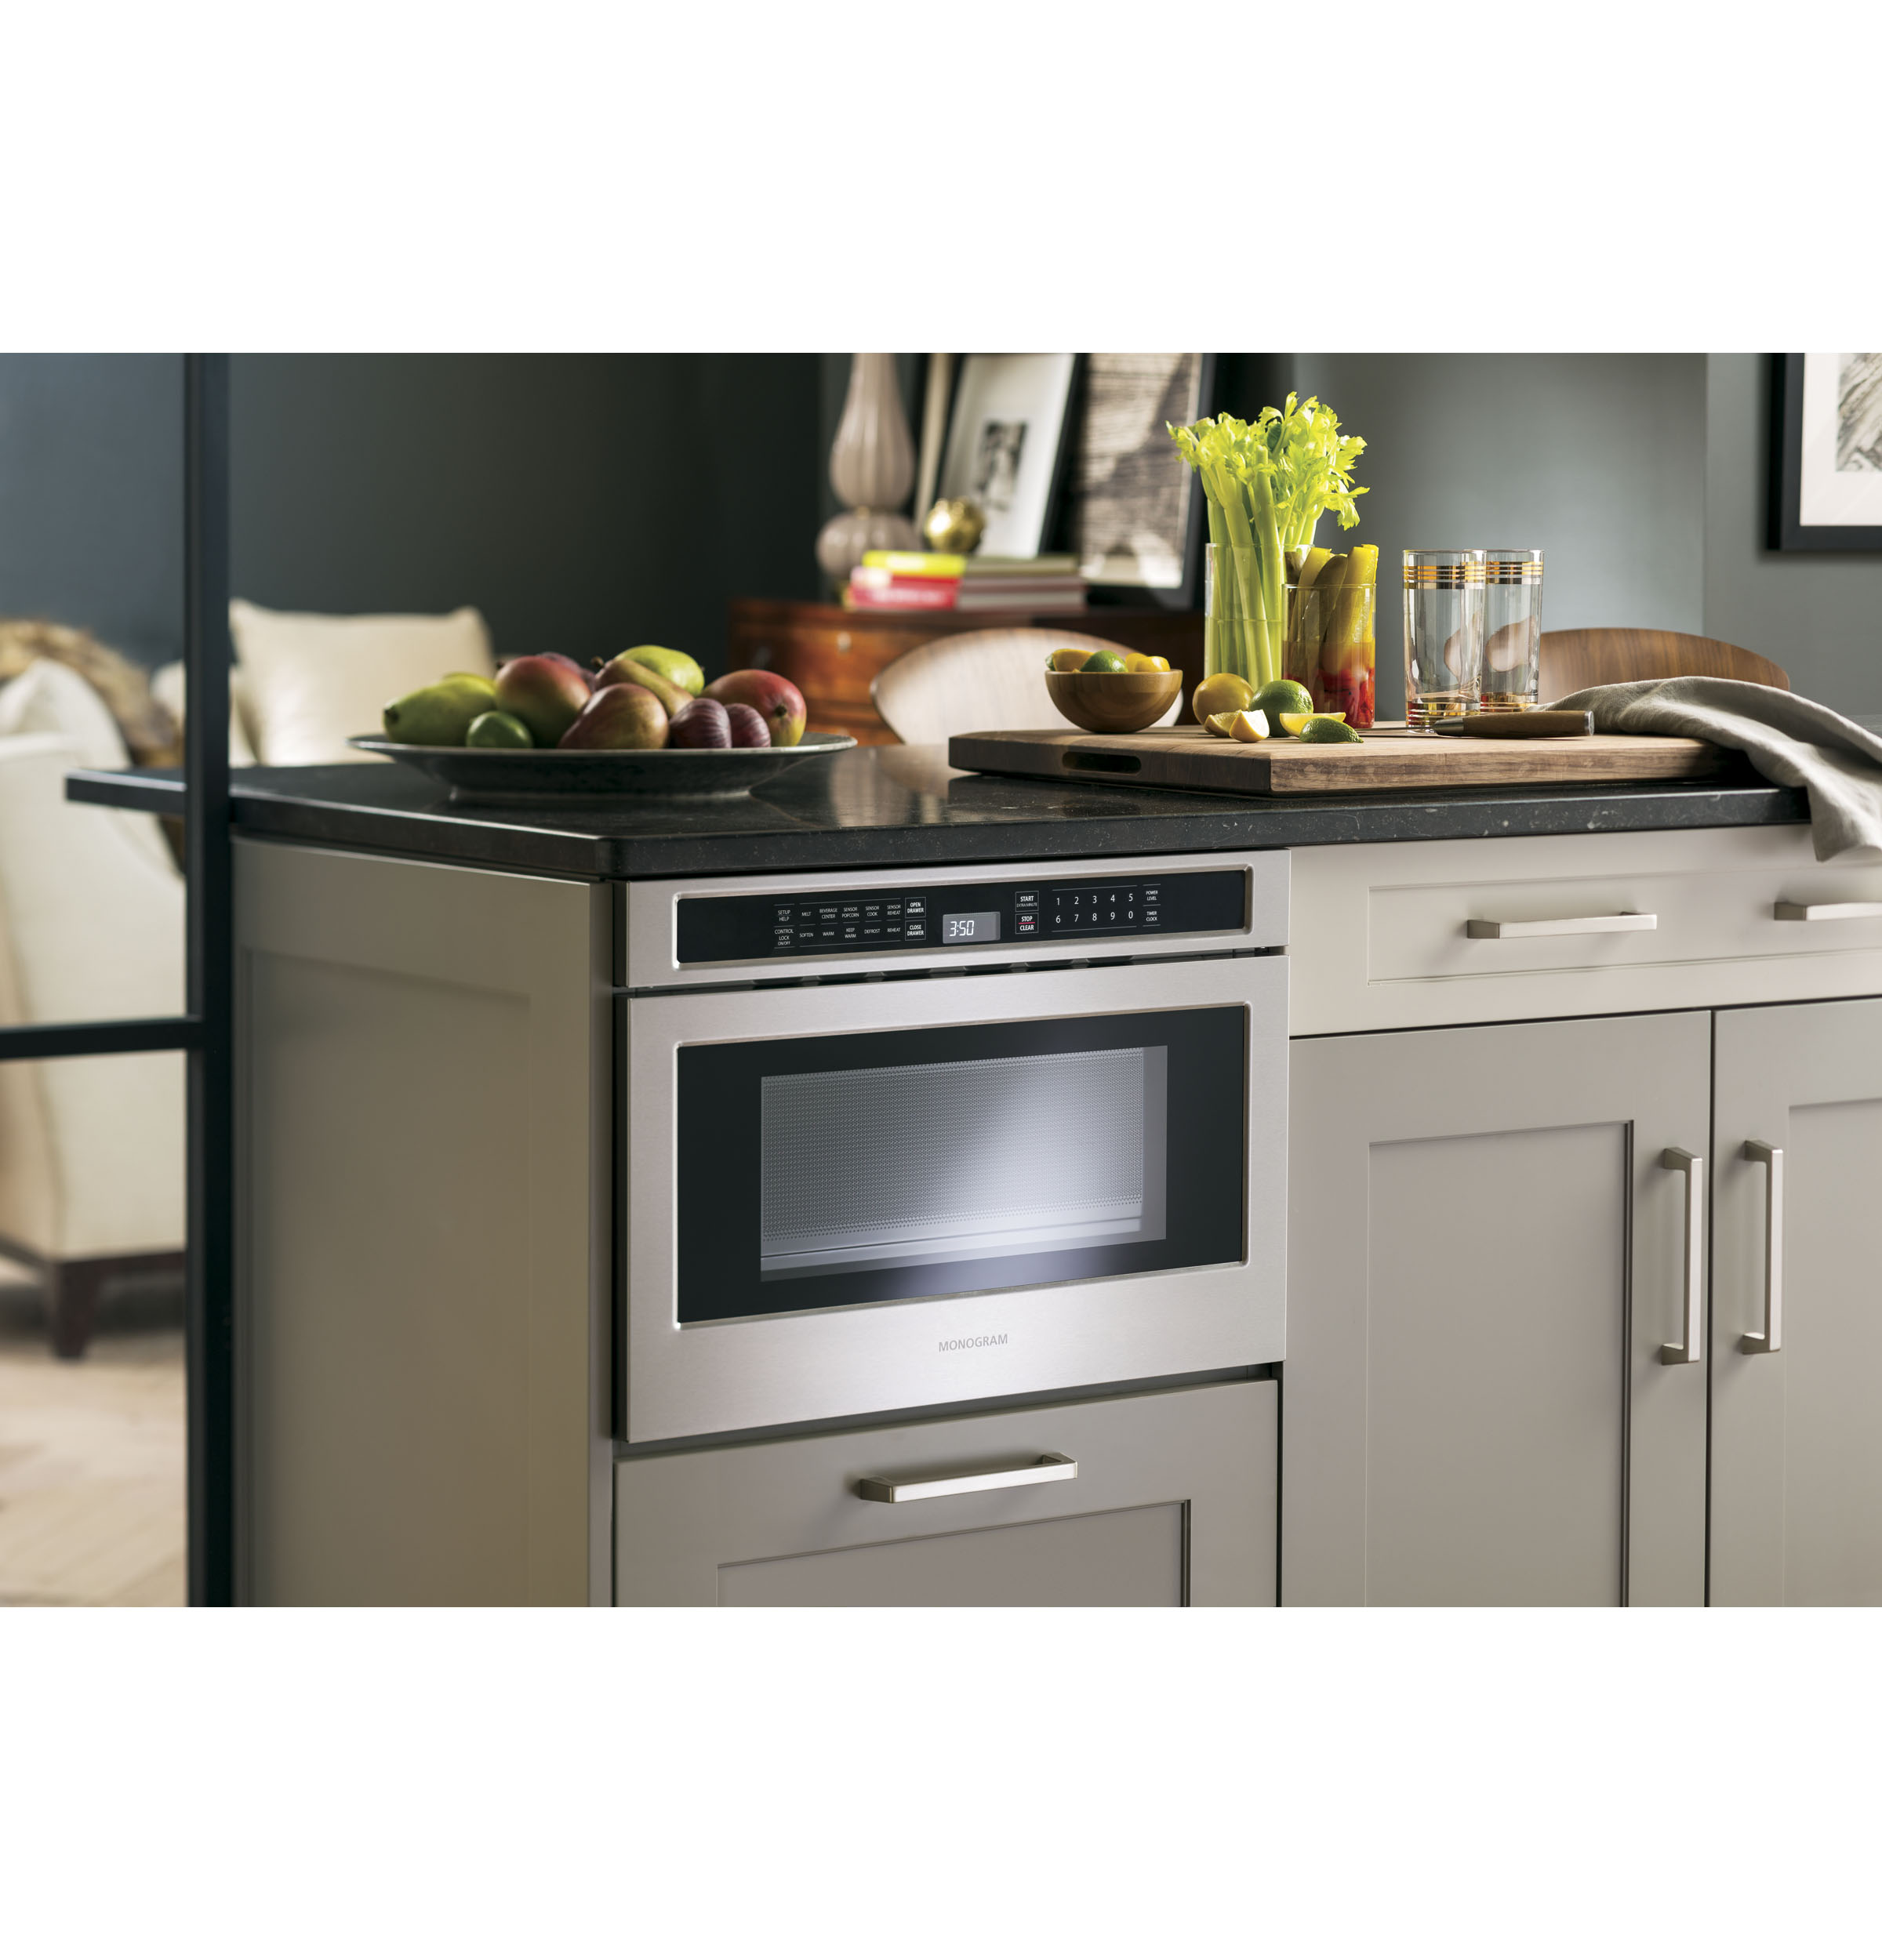 bosch microwave the fact that reviews biggest upside many people however with on zoom customer service drawer appliances sharp this of major don style is for deal have best art gas drawers you to t simple